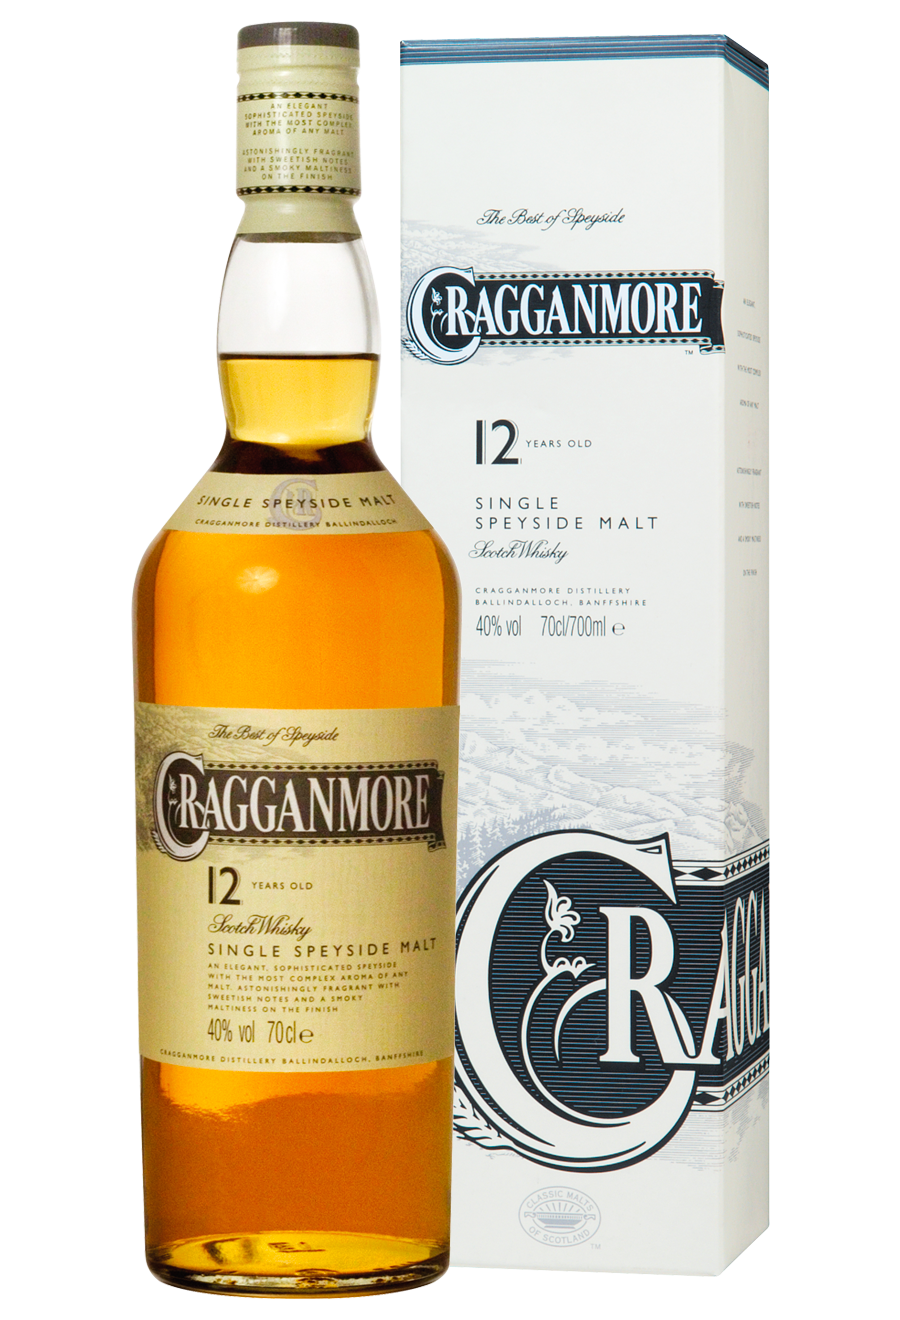 Cragganmore 12 Years Old, Speyside